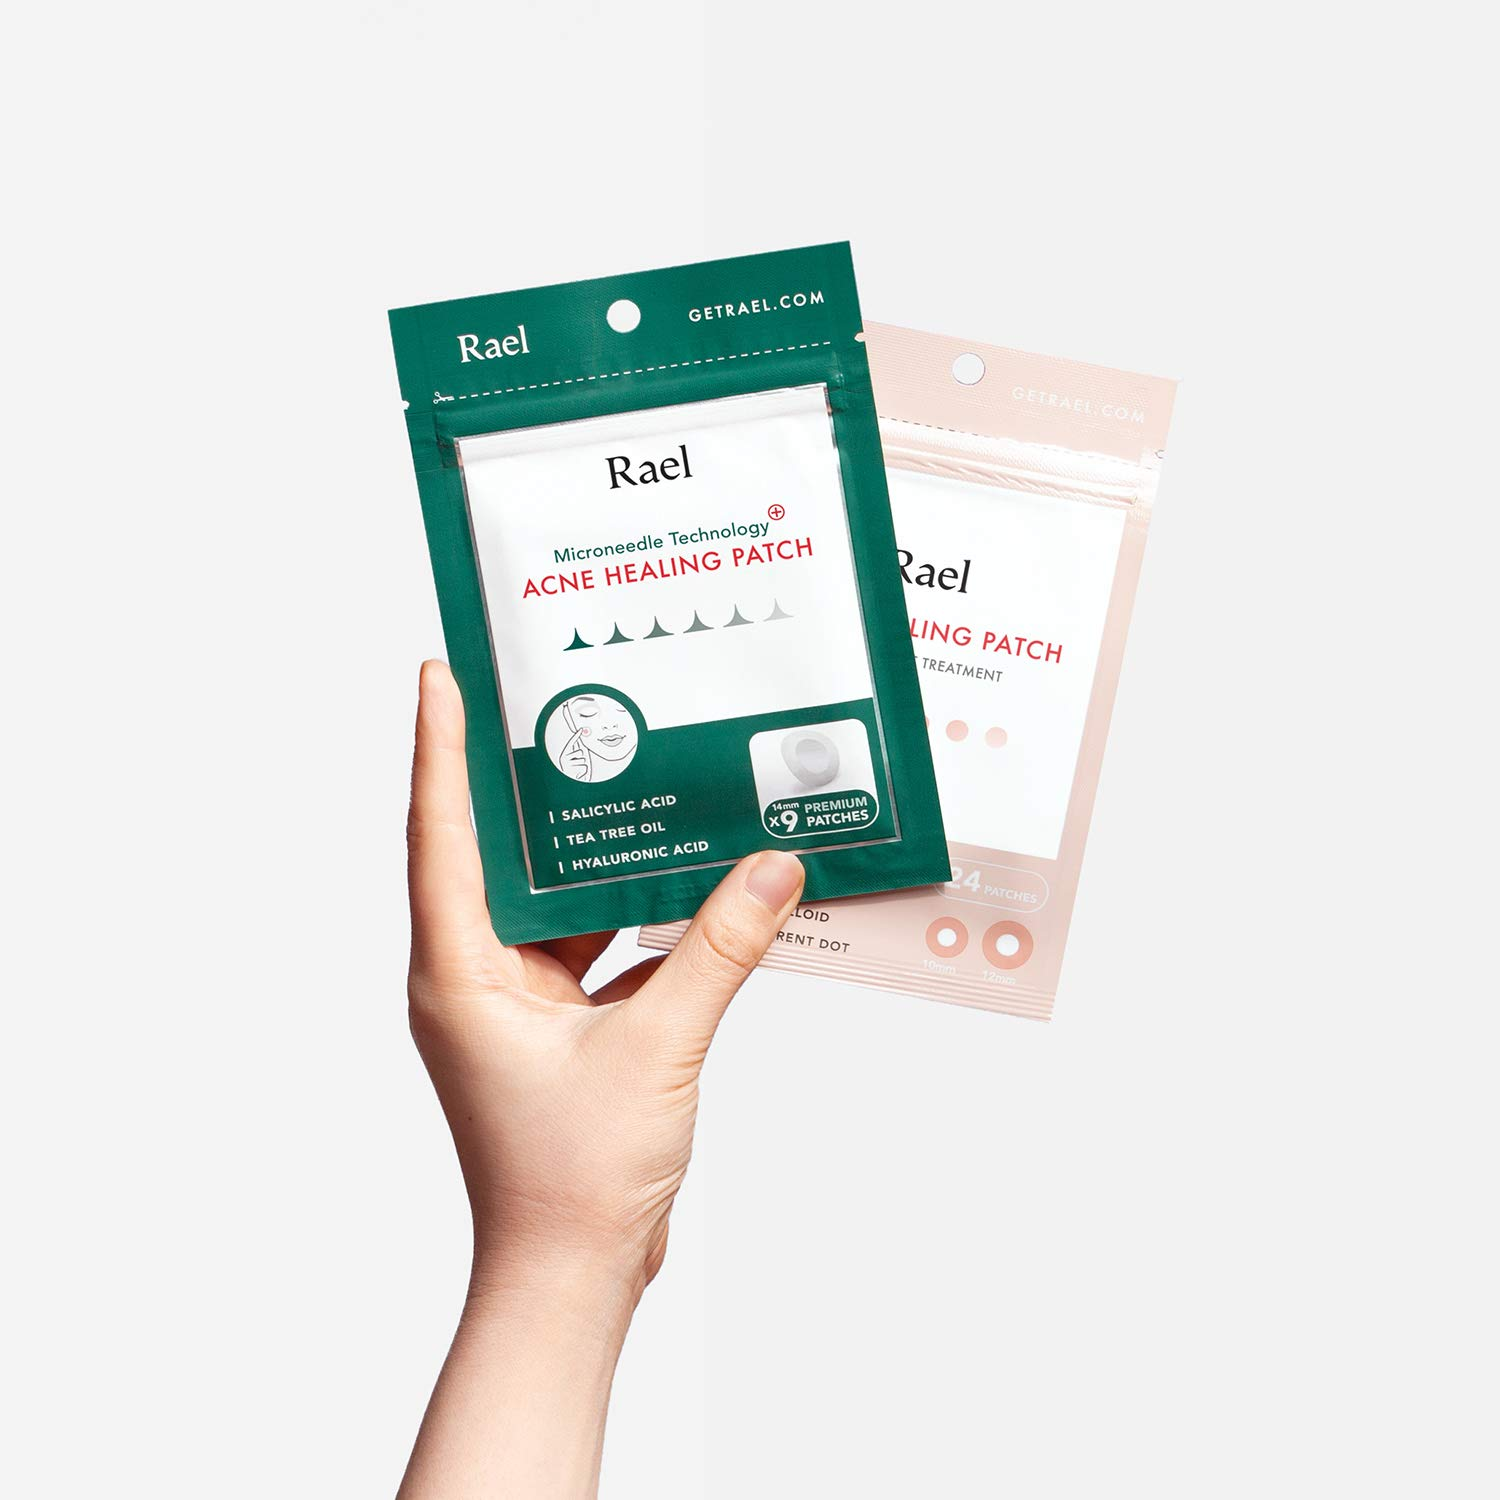 Rael Microneedle Acne Healing Patch - Pimple Acne Spot Tea Tree Treatment (4Pack, 36 Patches) by Rael (Image #7)